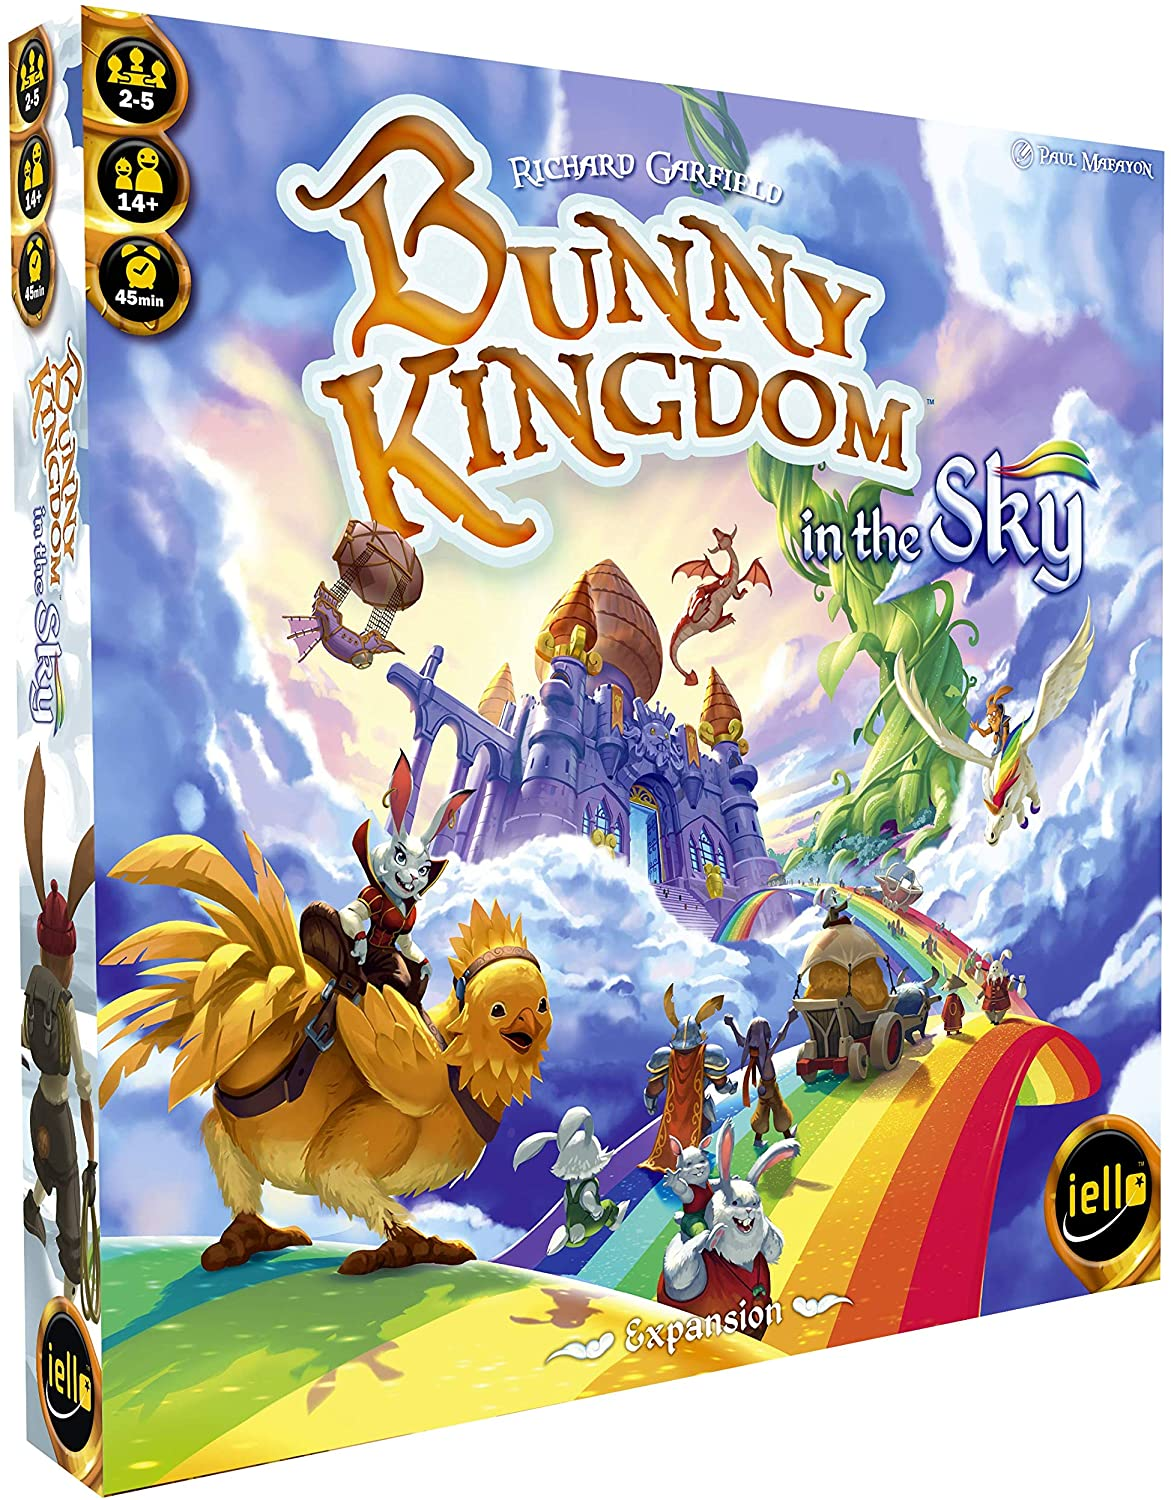 Bunny Kingdom: in The Sky Bunny Kingdom | Games Portal